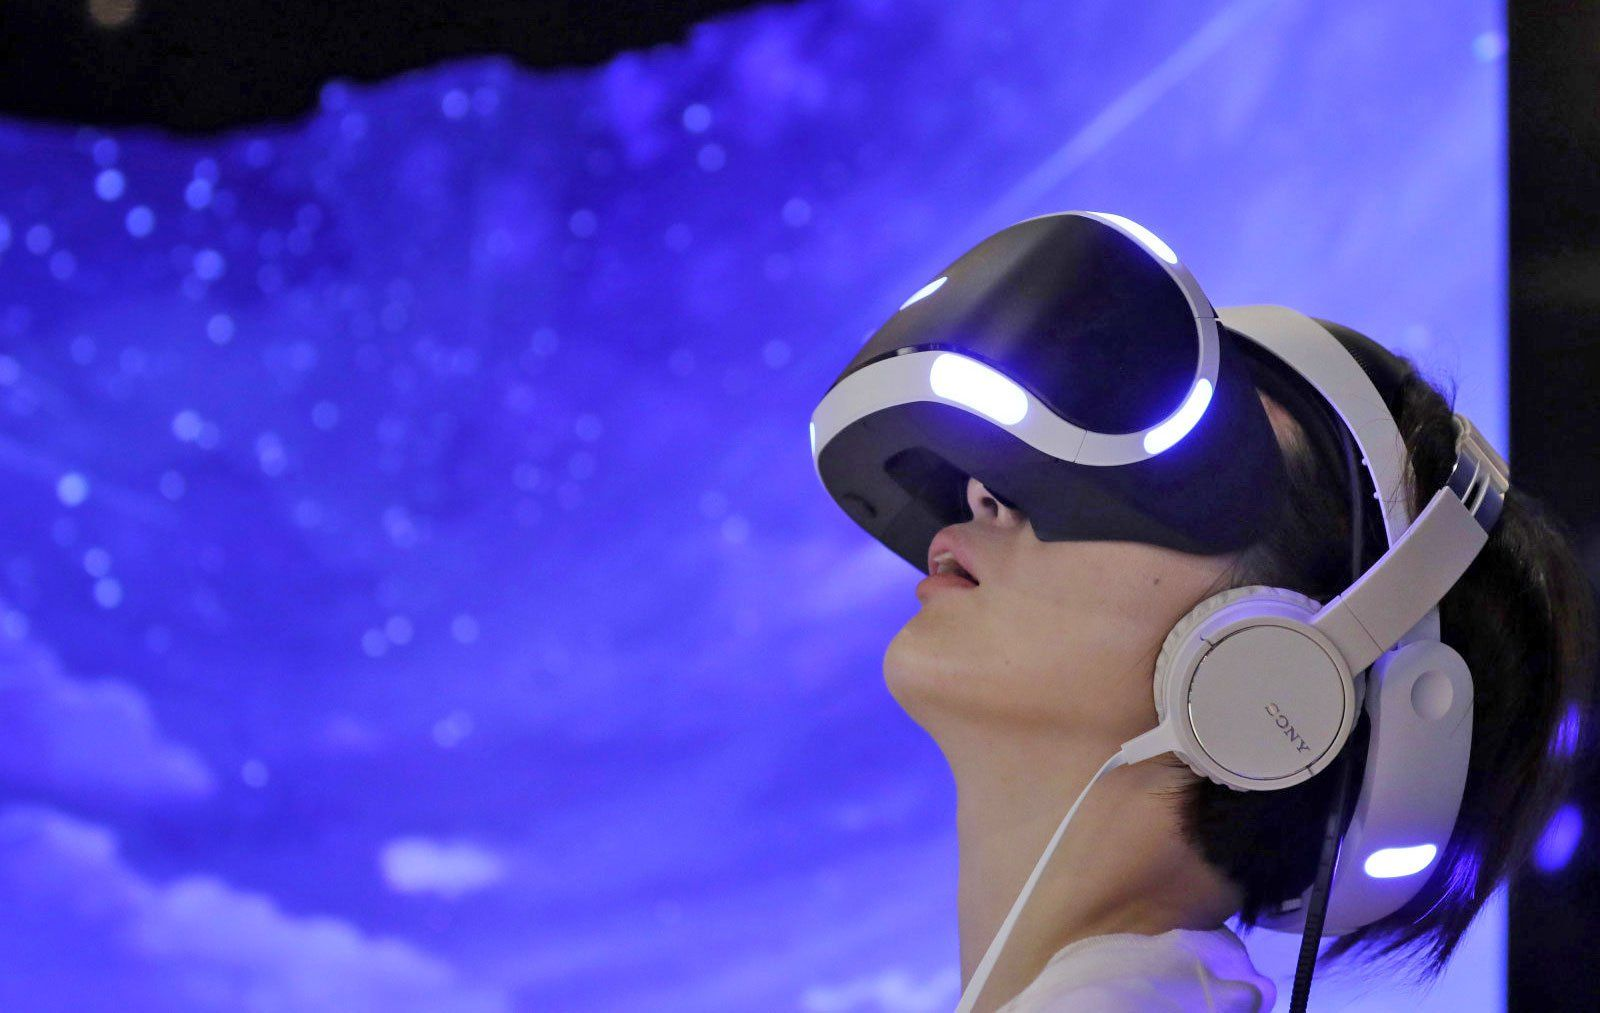 Live from Sony's CES 2017 press event! (con imágenes) Gamers